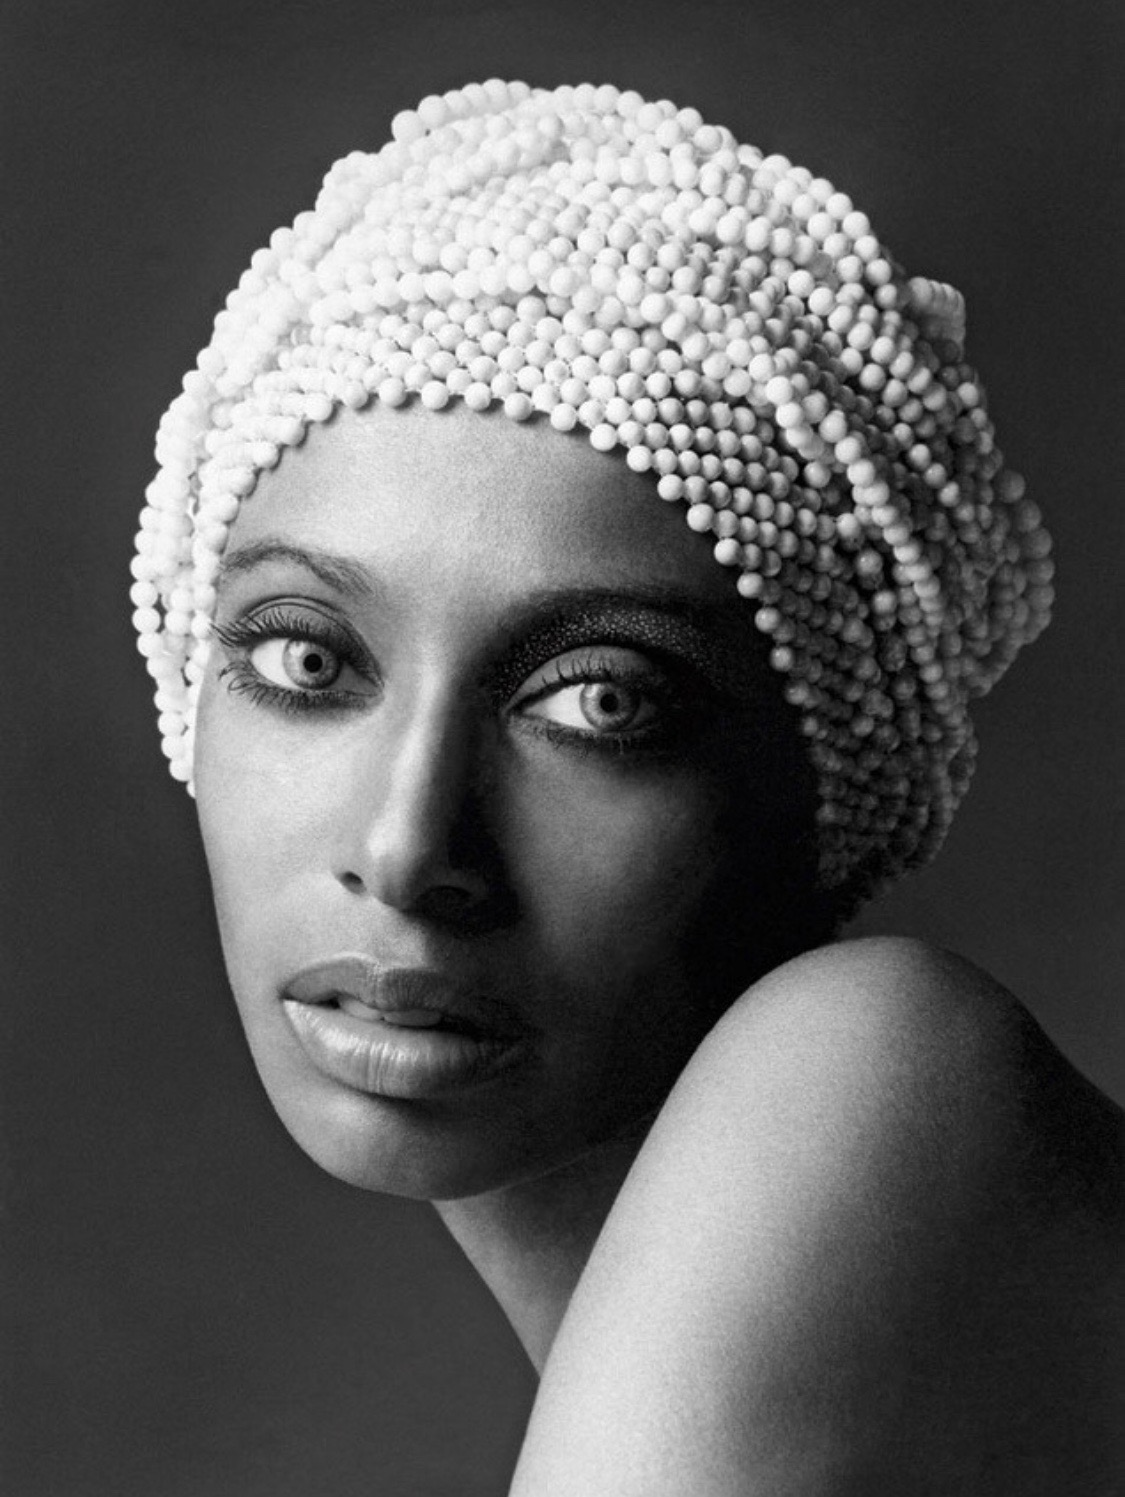 The First Black Fashion Model: Helen Williams  Too Black for America.  It was the French that embraced her 1st.  There were others before her but none who crossed over into the mainstream.  Born in East Riverton, New Jersey in 1937  She was spotted by Lena Horne and Sammy Davis Jr. at the age of 17  Ms. Williams modeled for Ebony and Jet magazine. She was most popular in Paris and modeled for famous fashion houses like Dior.  This journey to be accepted in the modeling world was an uphill battle for Helen and she never gave up fighting for the rights of future BLACK models.